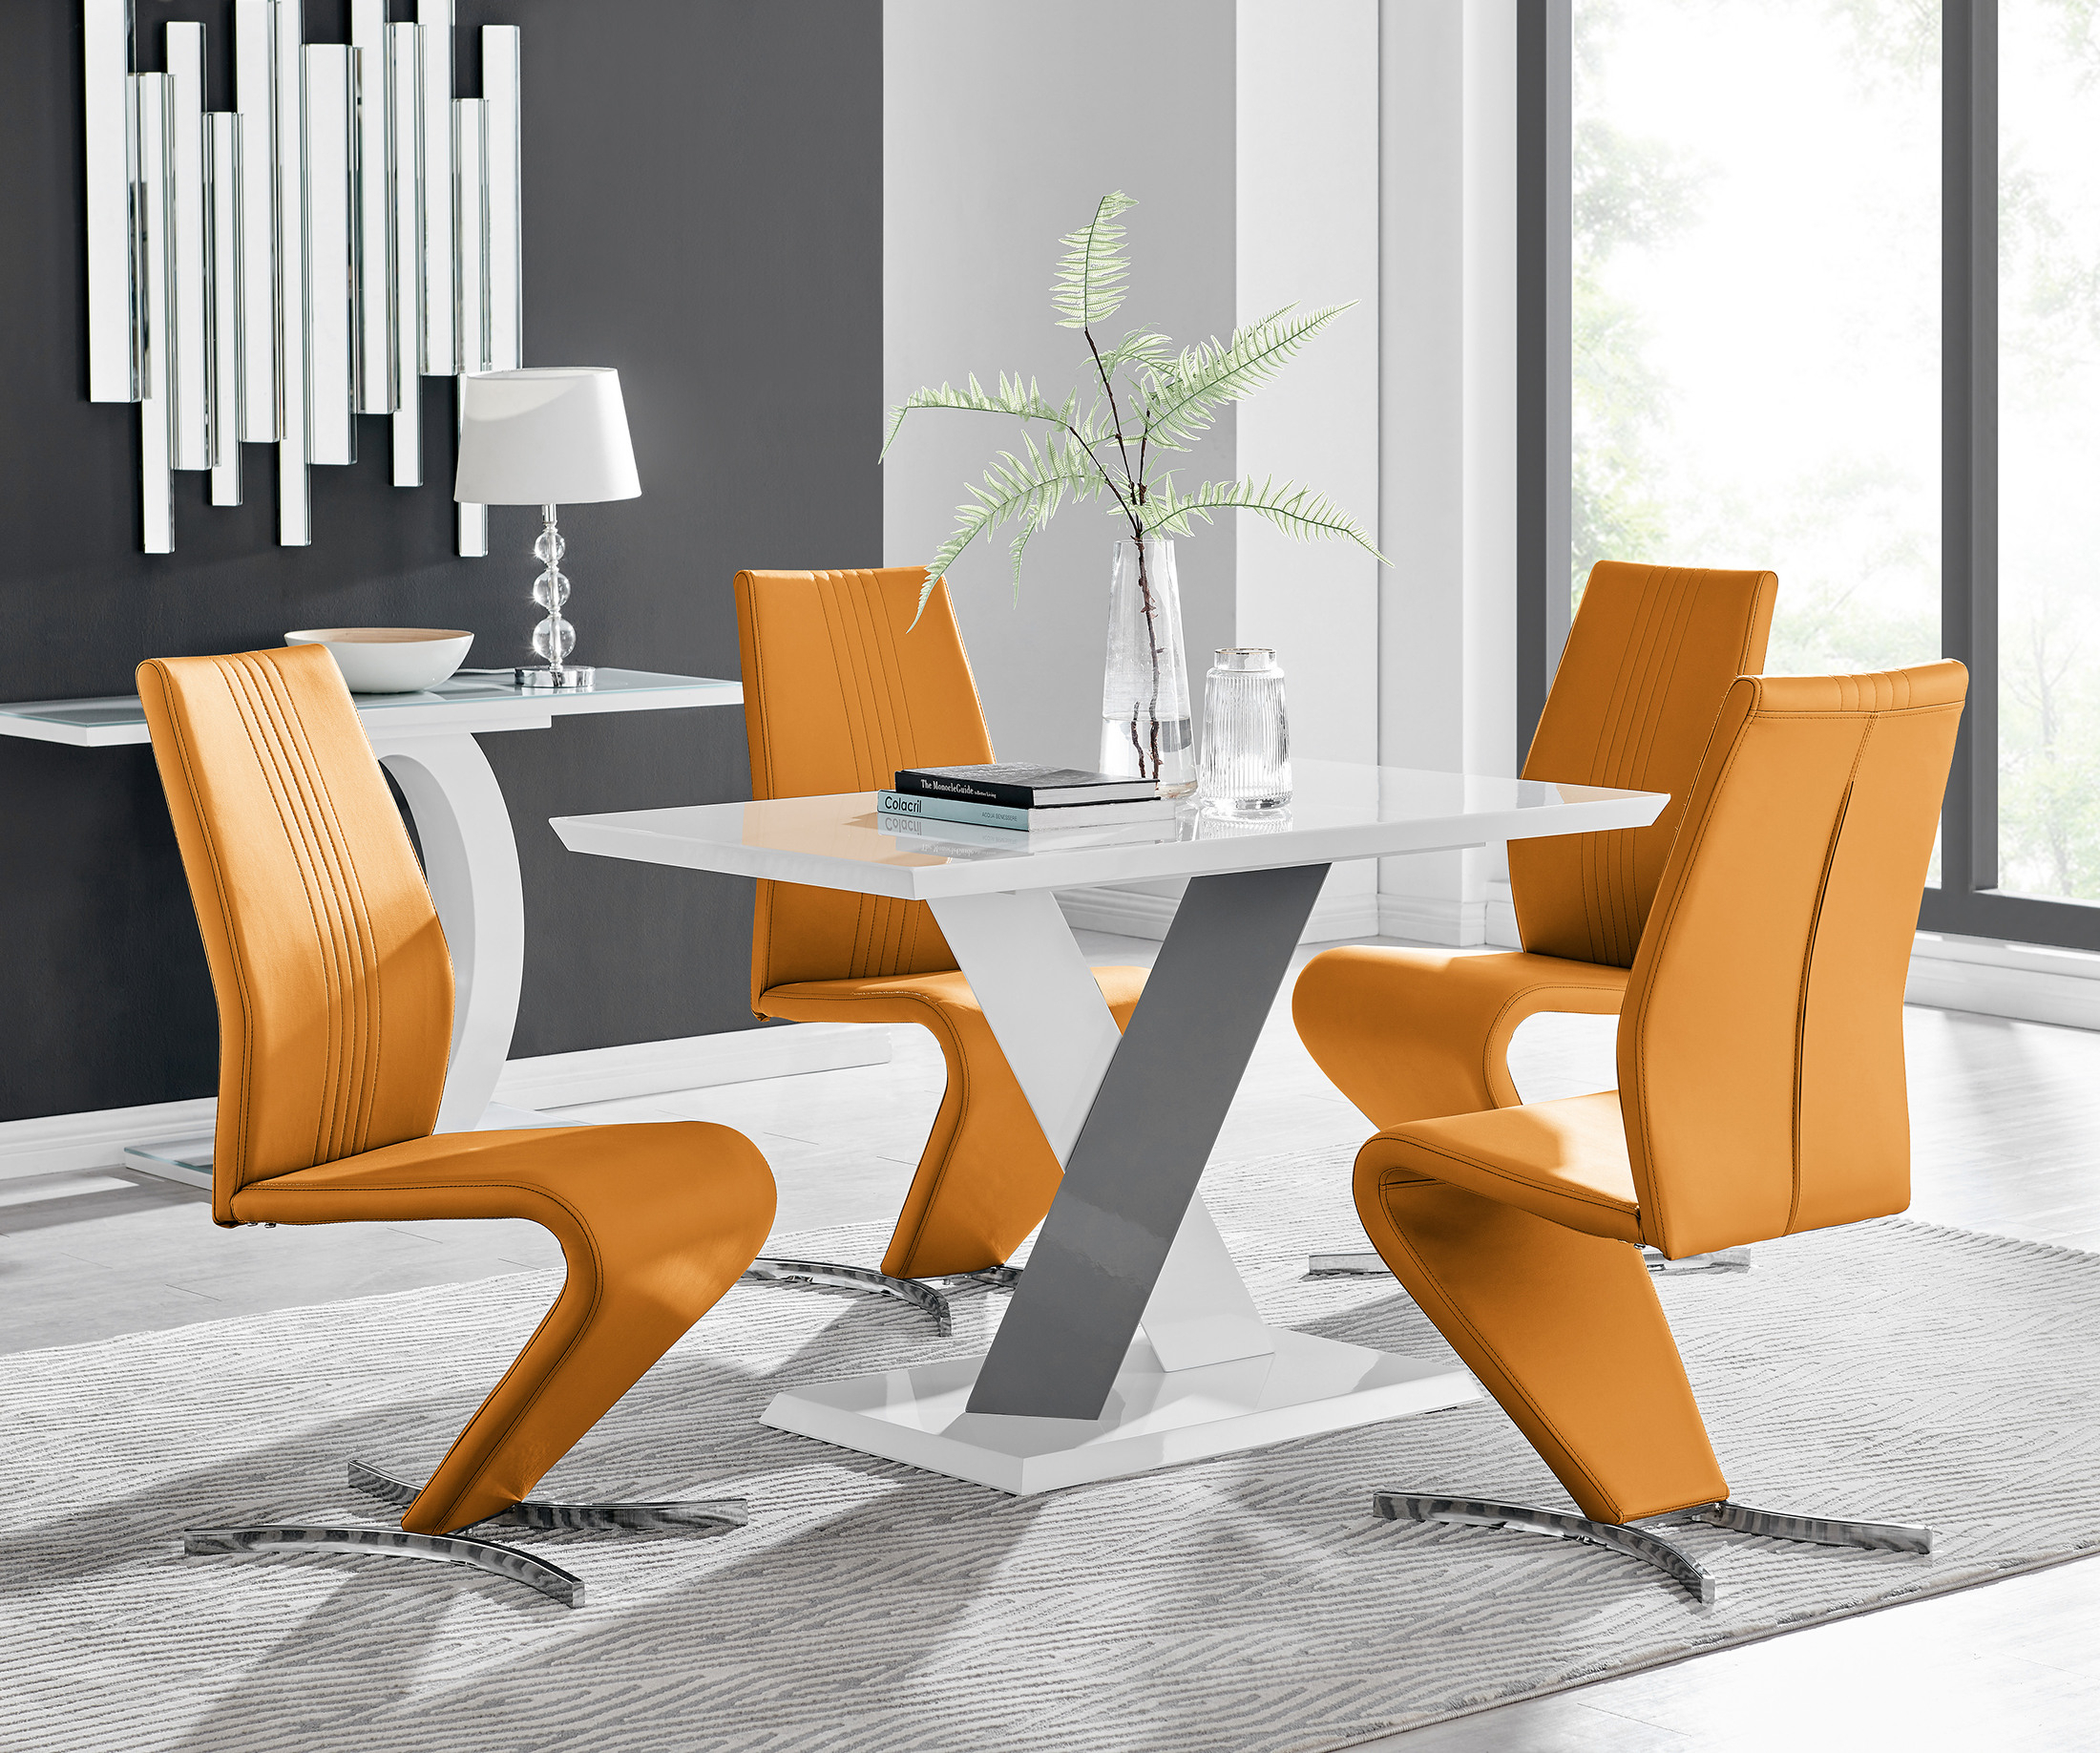 Monza 4 White/grey Dining Table & 4 Willow Chairs With Regard To Monza Tv Stands (View 9 of 20)